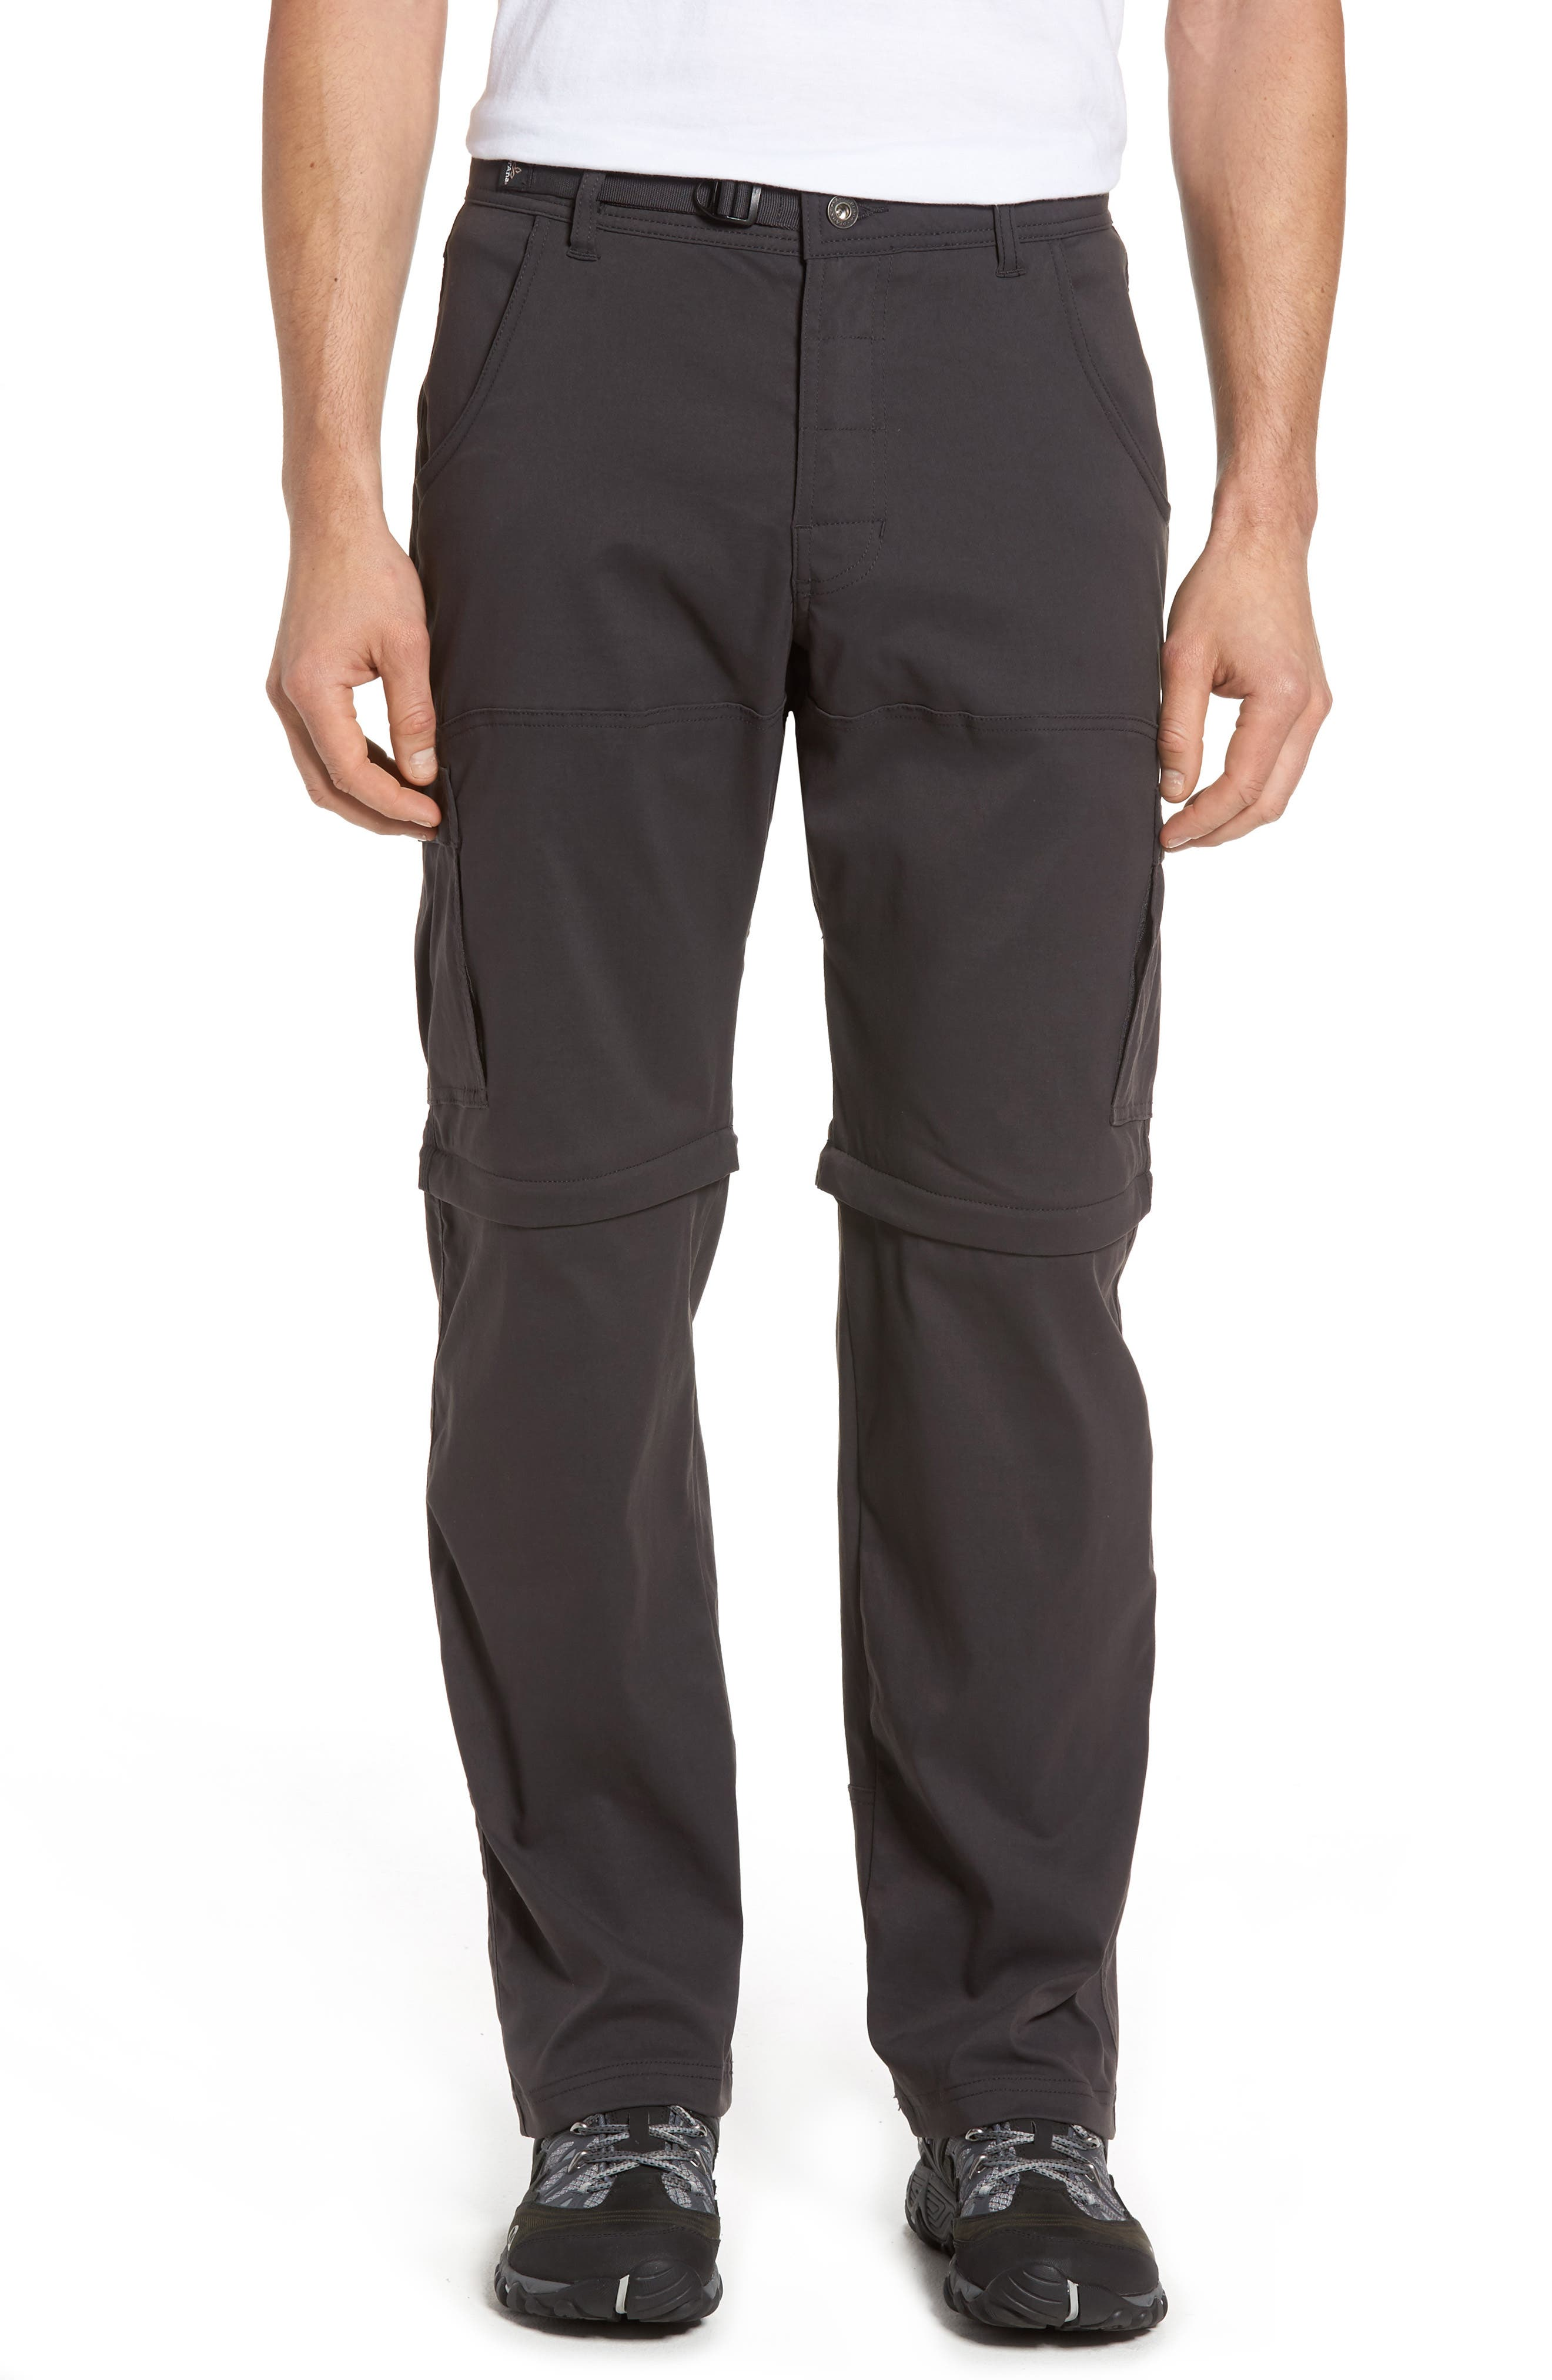 Zion Stretch Convertible Cargo Hiking Pants,                         Main,                         color, 010